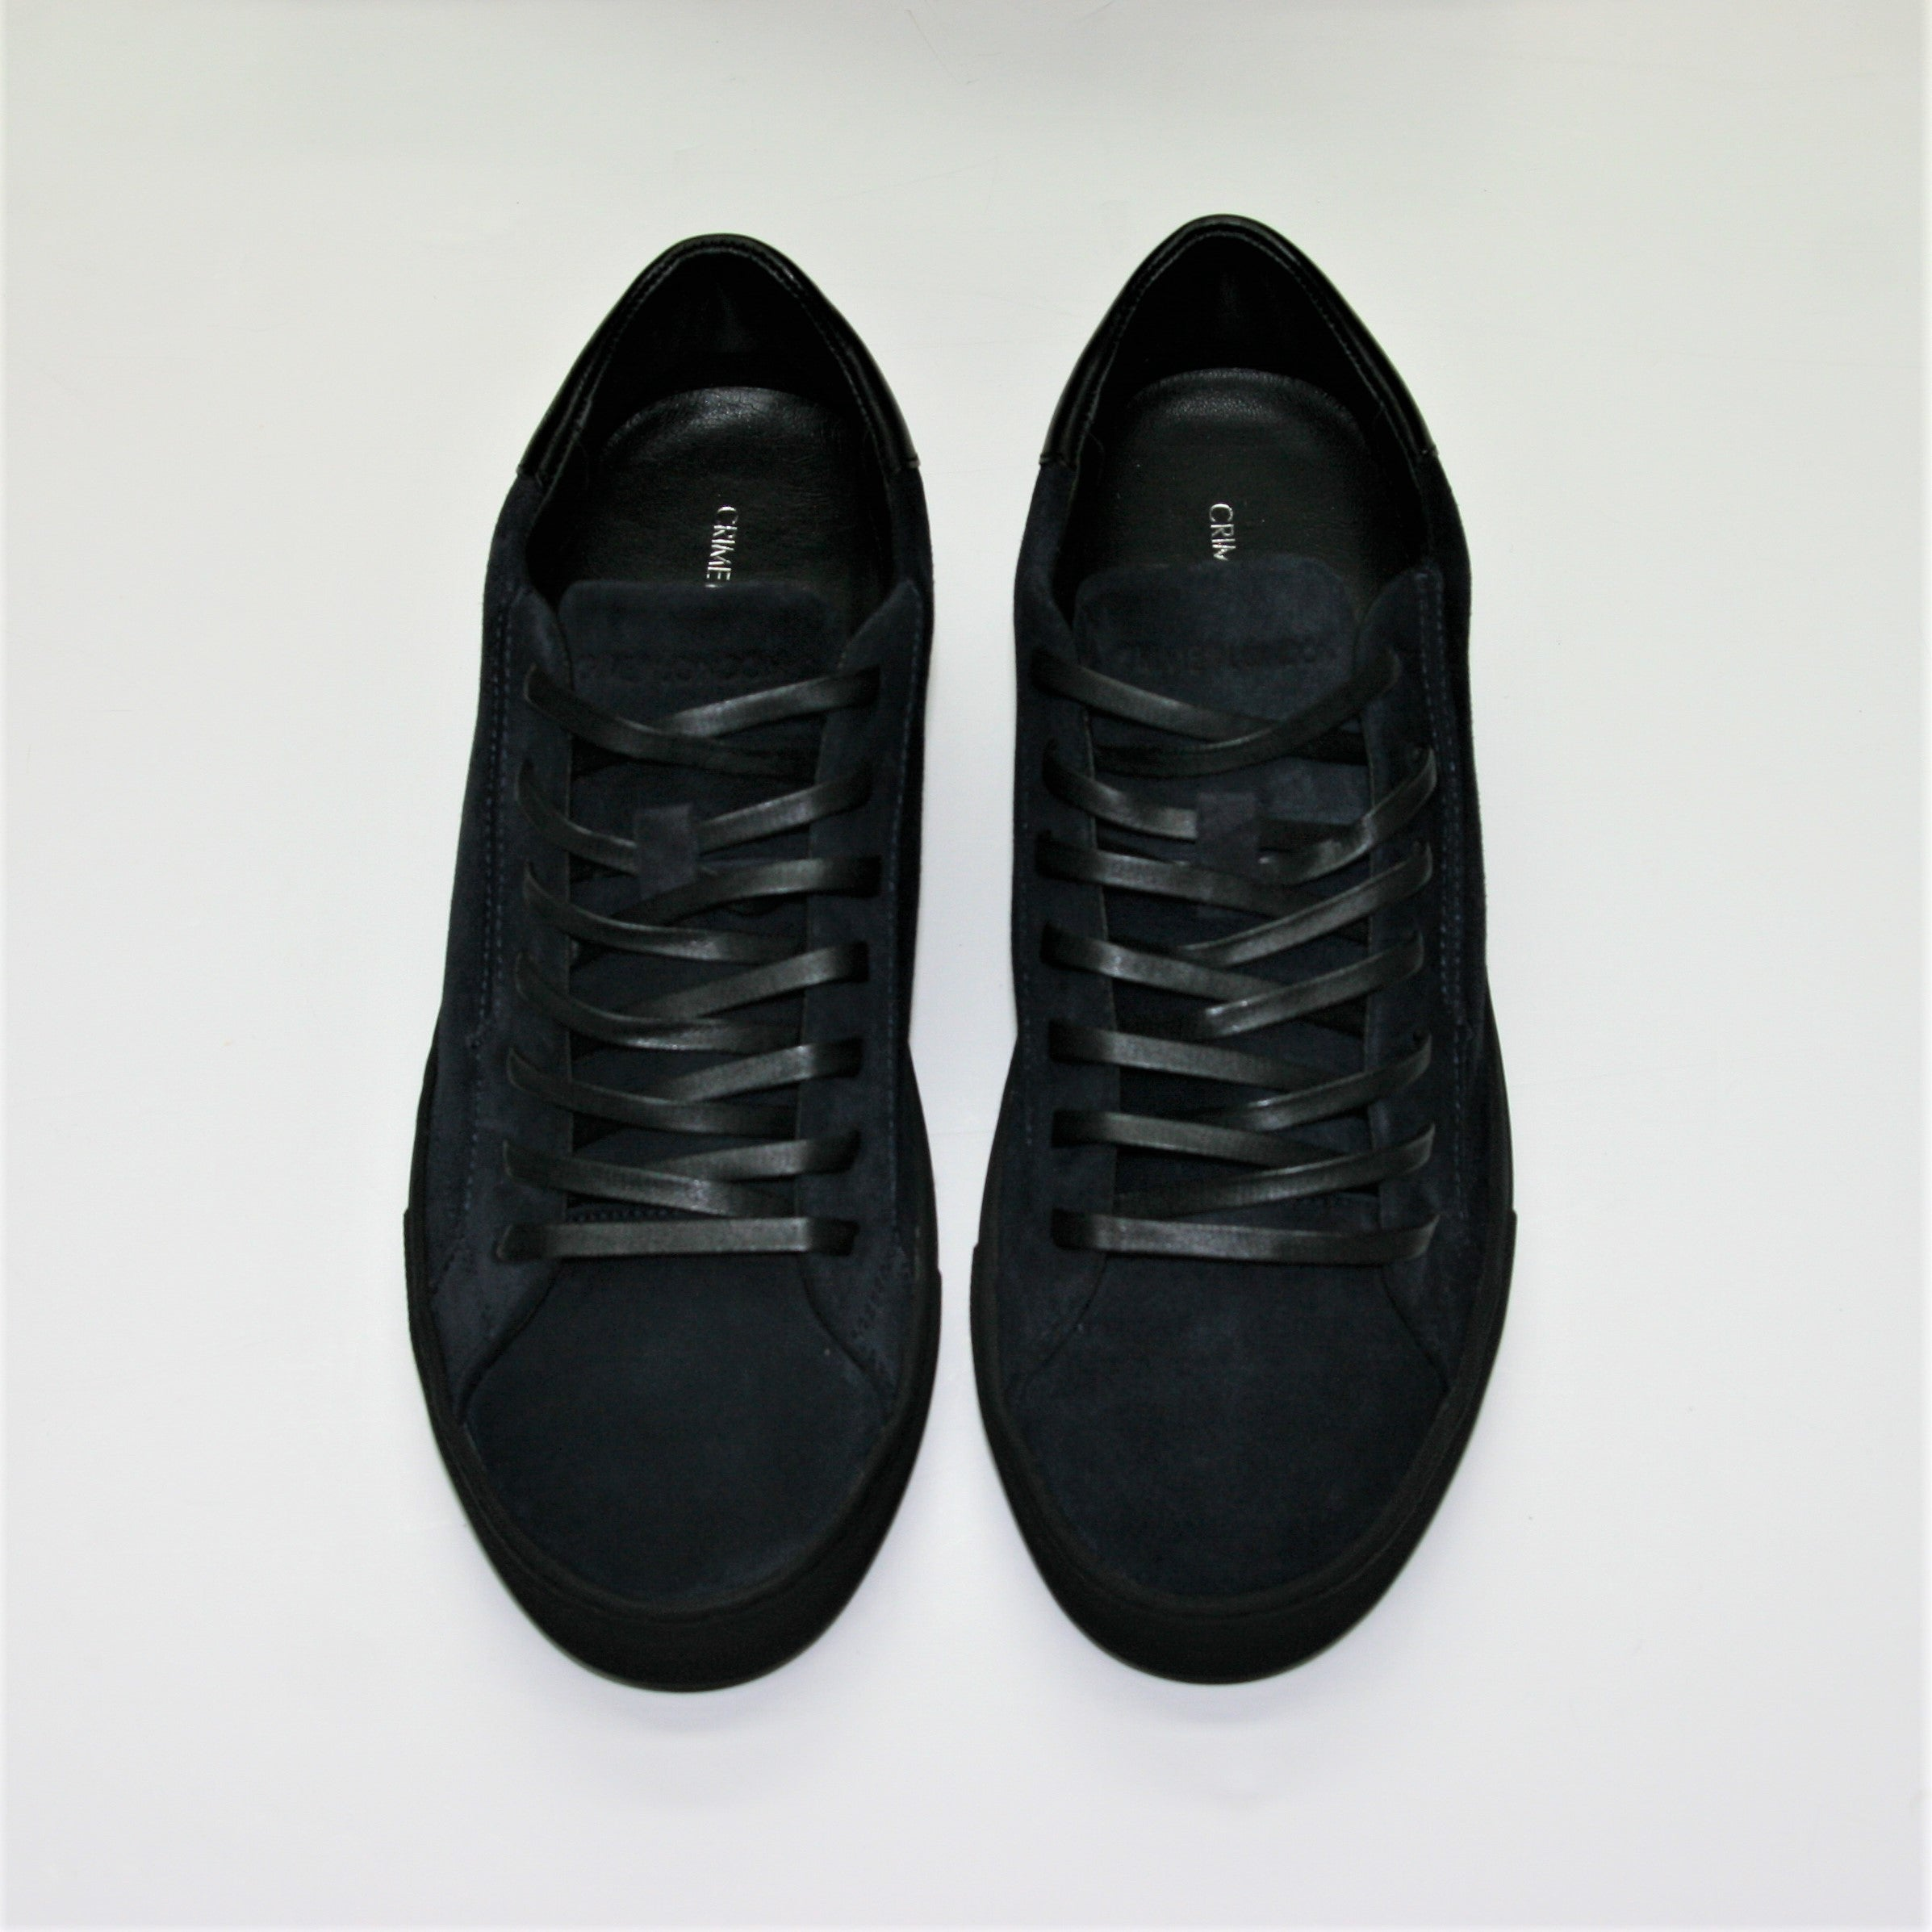 Crime London Navy Suede Trainer